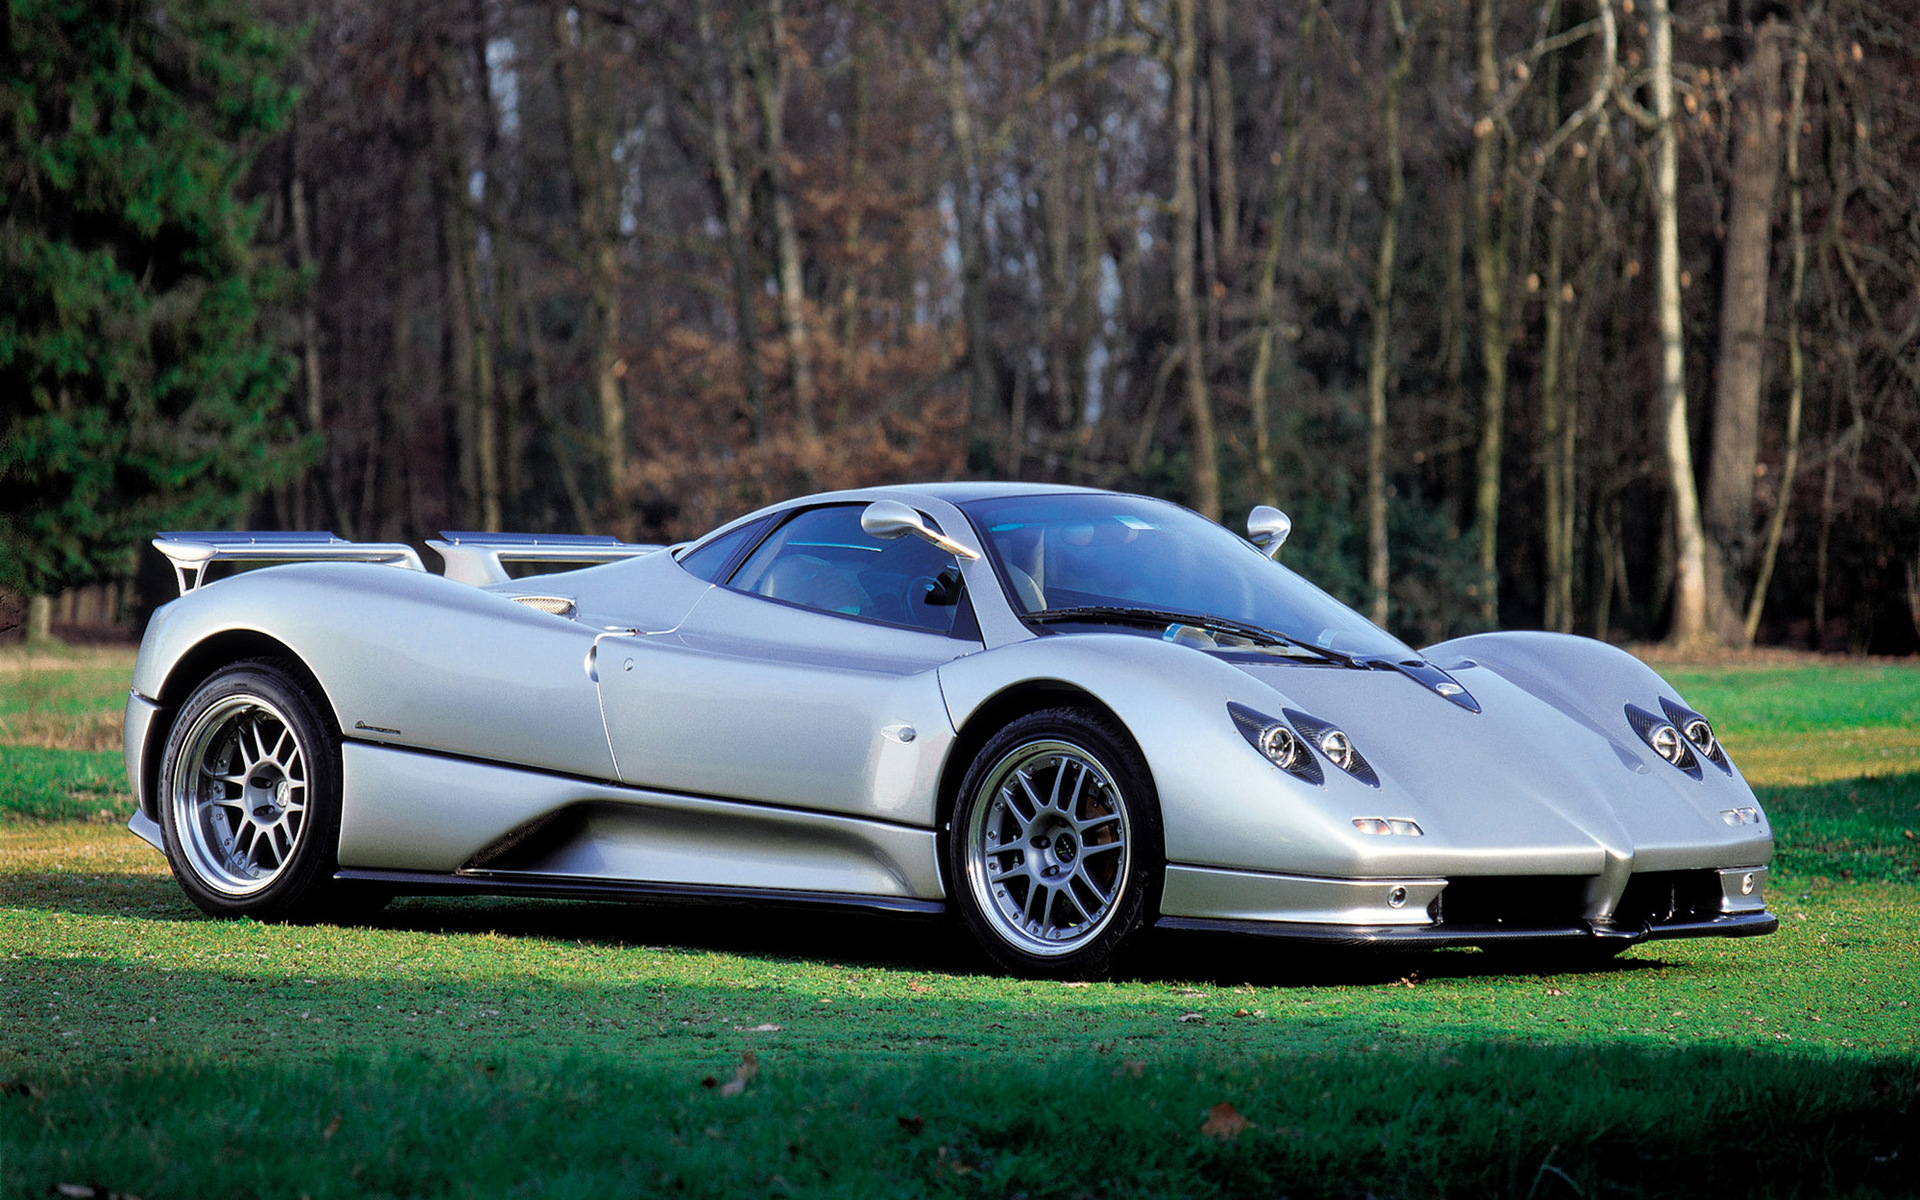 pagani zonda c12 s (2000) wallpapers and hd images - car pixel